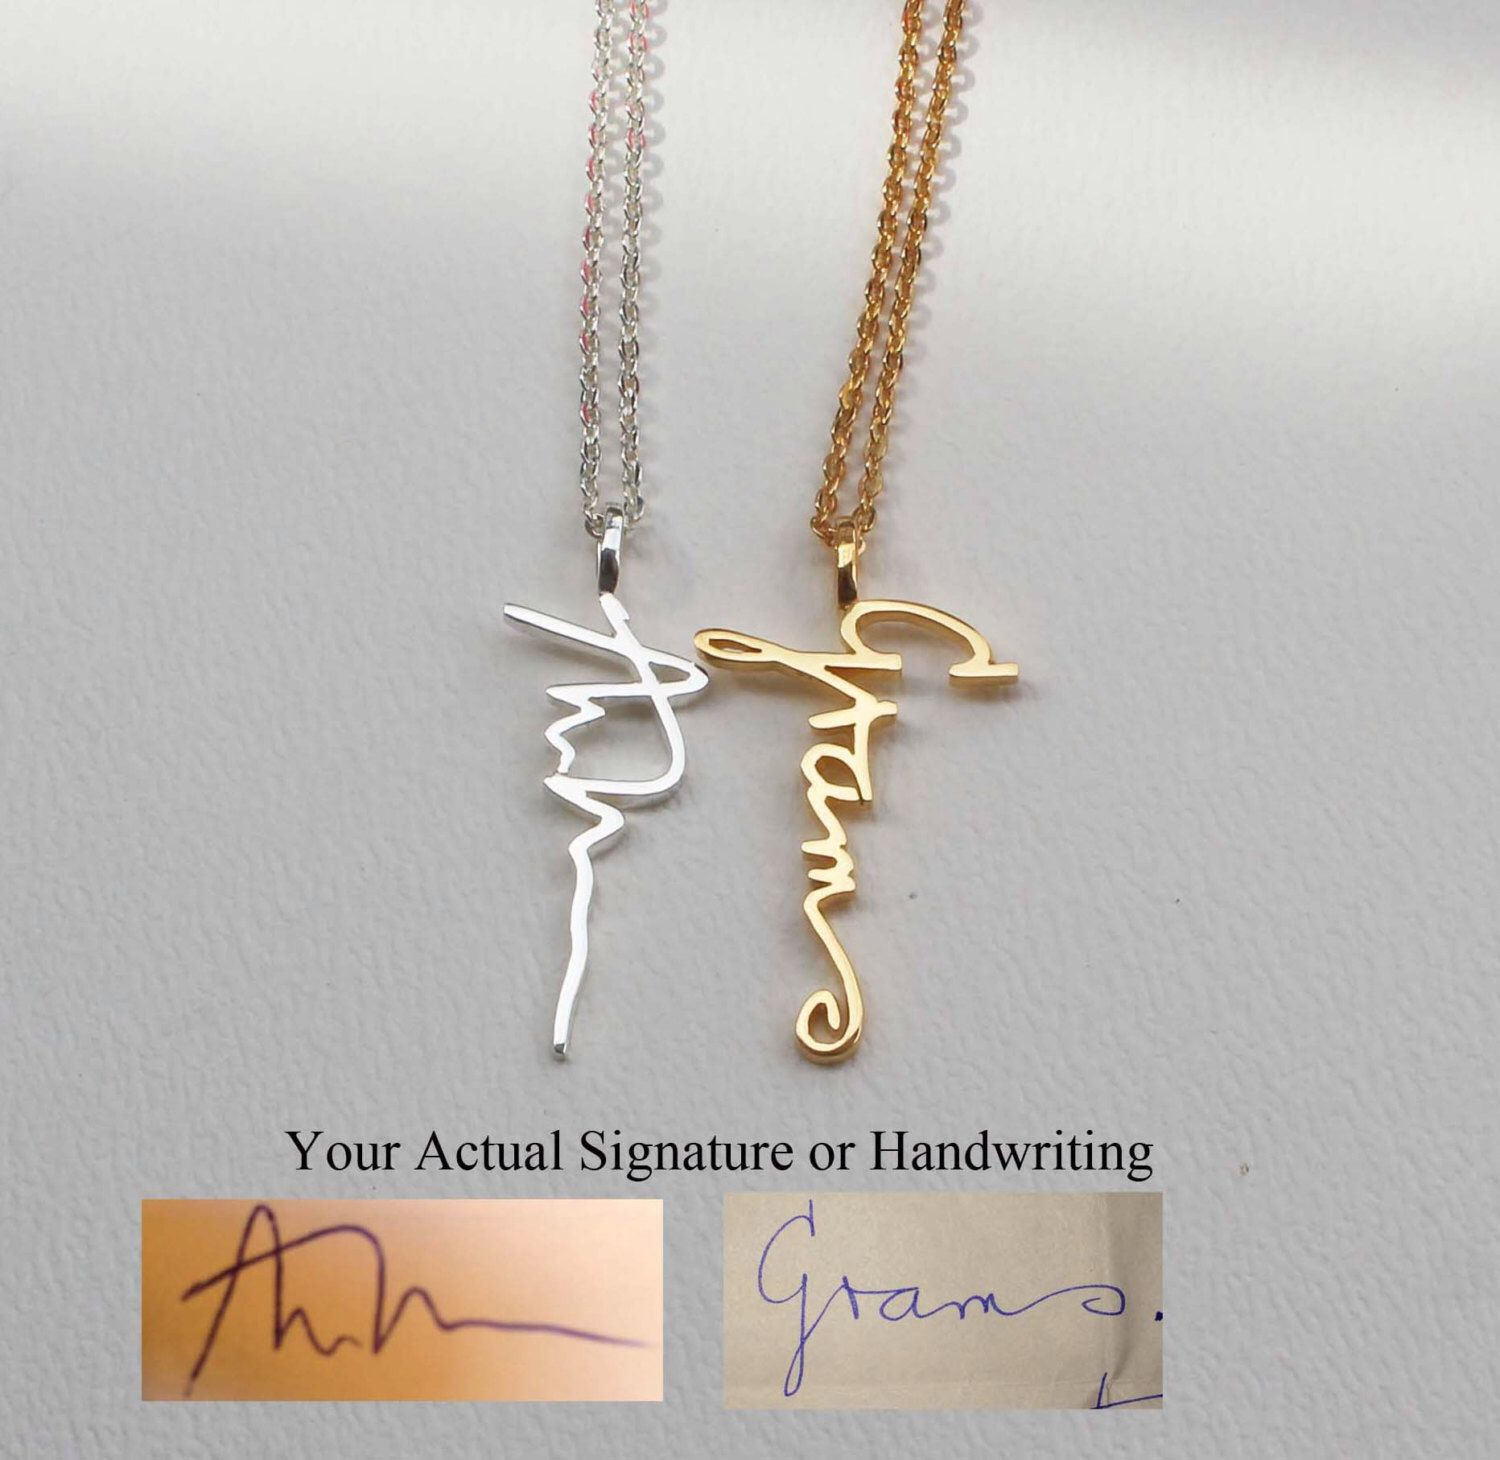 the breakpoint for at customized couples gld script custom me necklace shop